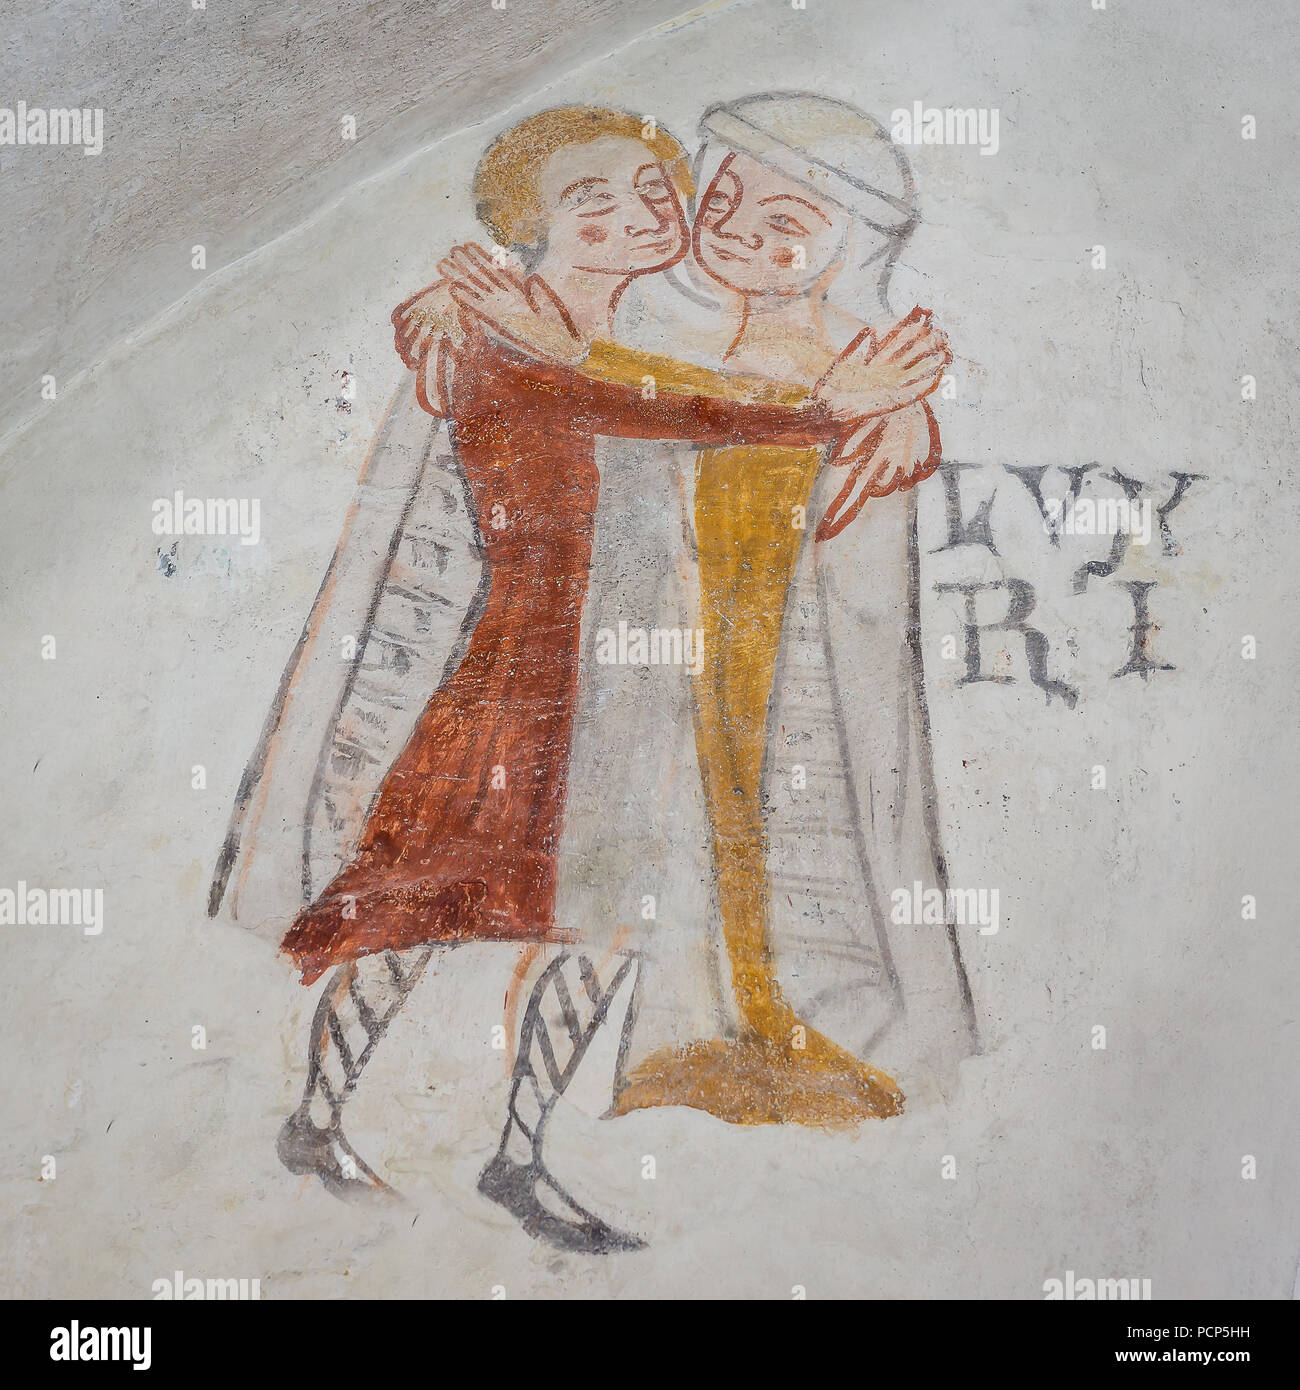 Lust, one of the mortal sins. Man and woman embracing, an ancient gothic mural in Kirkerup public church, Denmark, July 3, 2018, - Stock Image